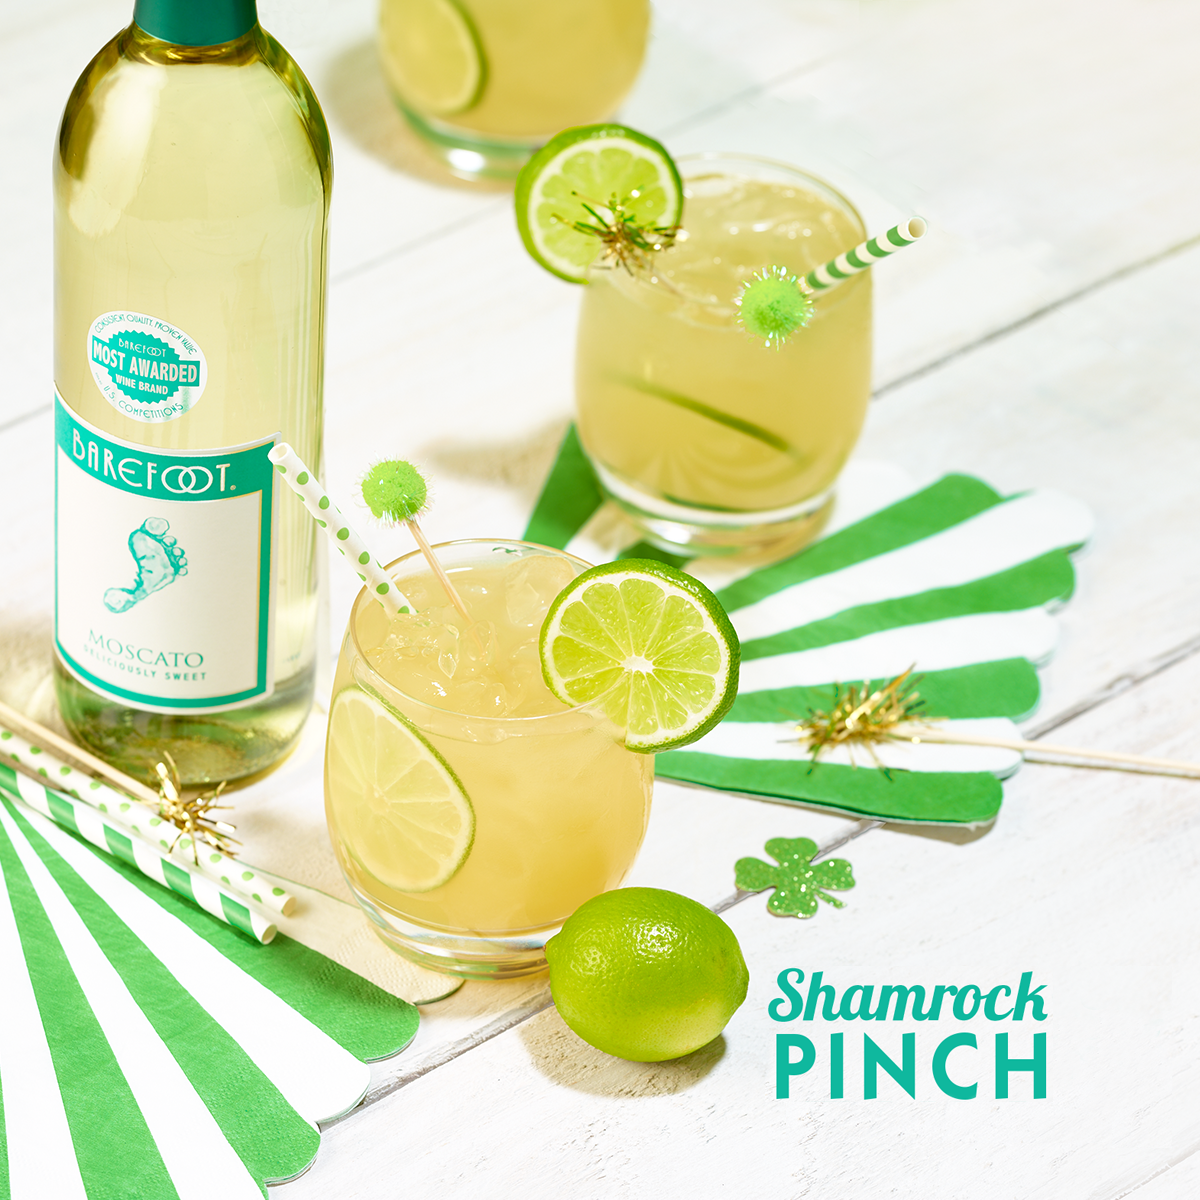 Shamrock Pinch with Barefoot Moscato